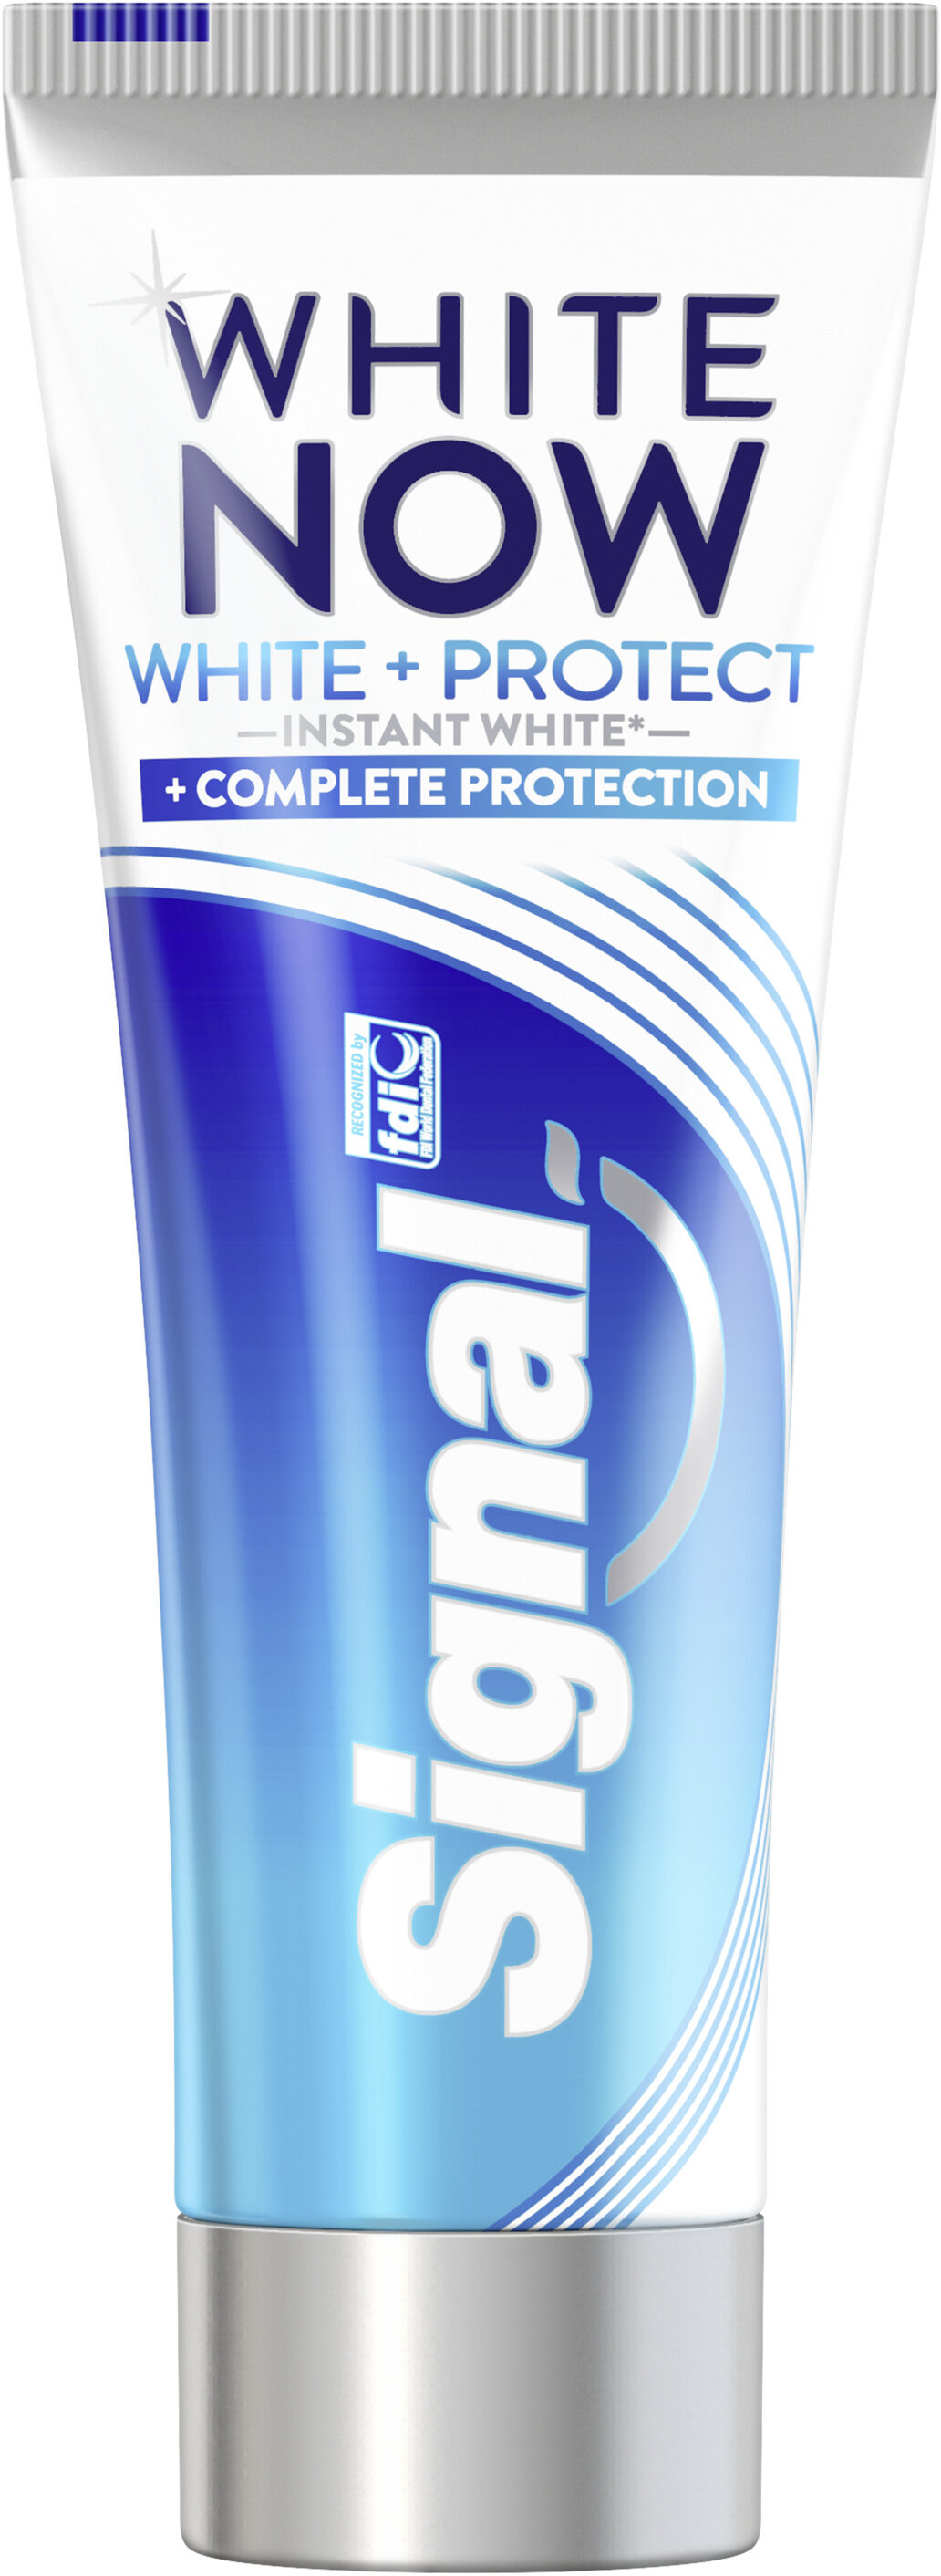 Signal Dentifrice Blancheur White + Protect - Product - fr